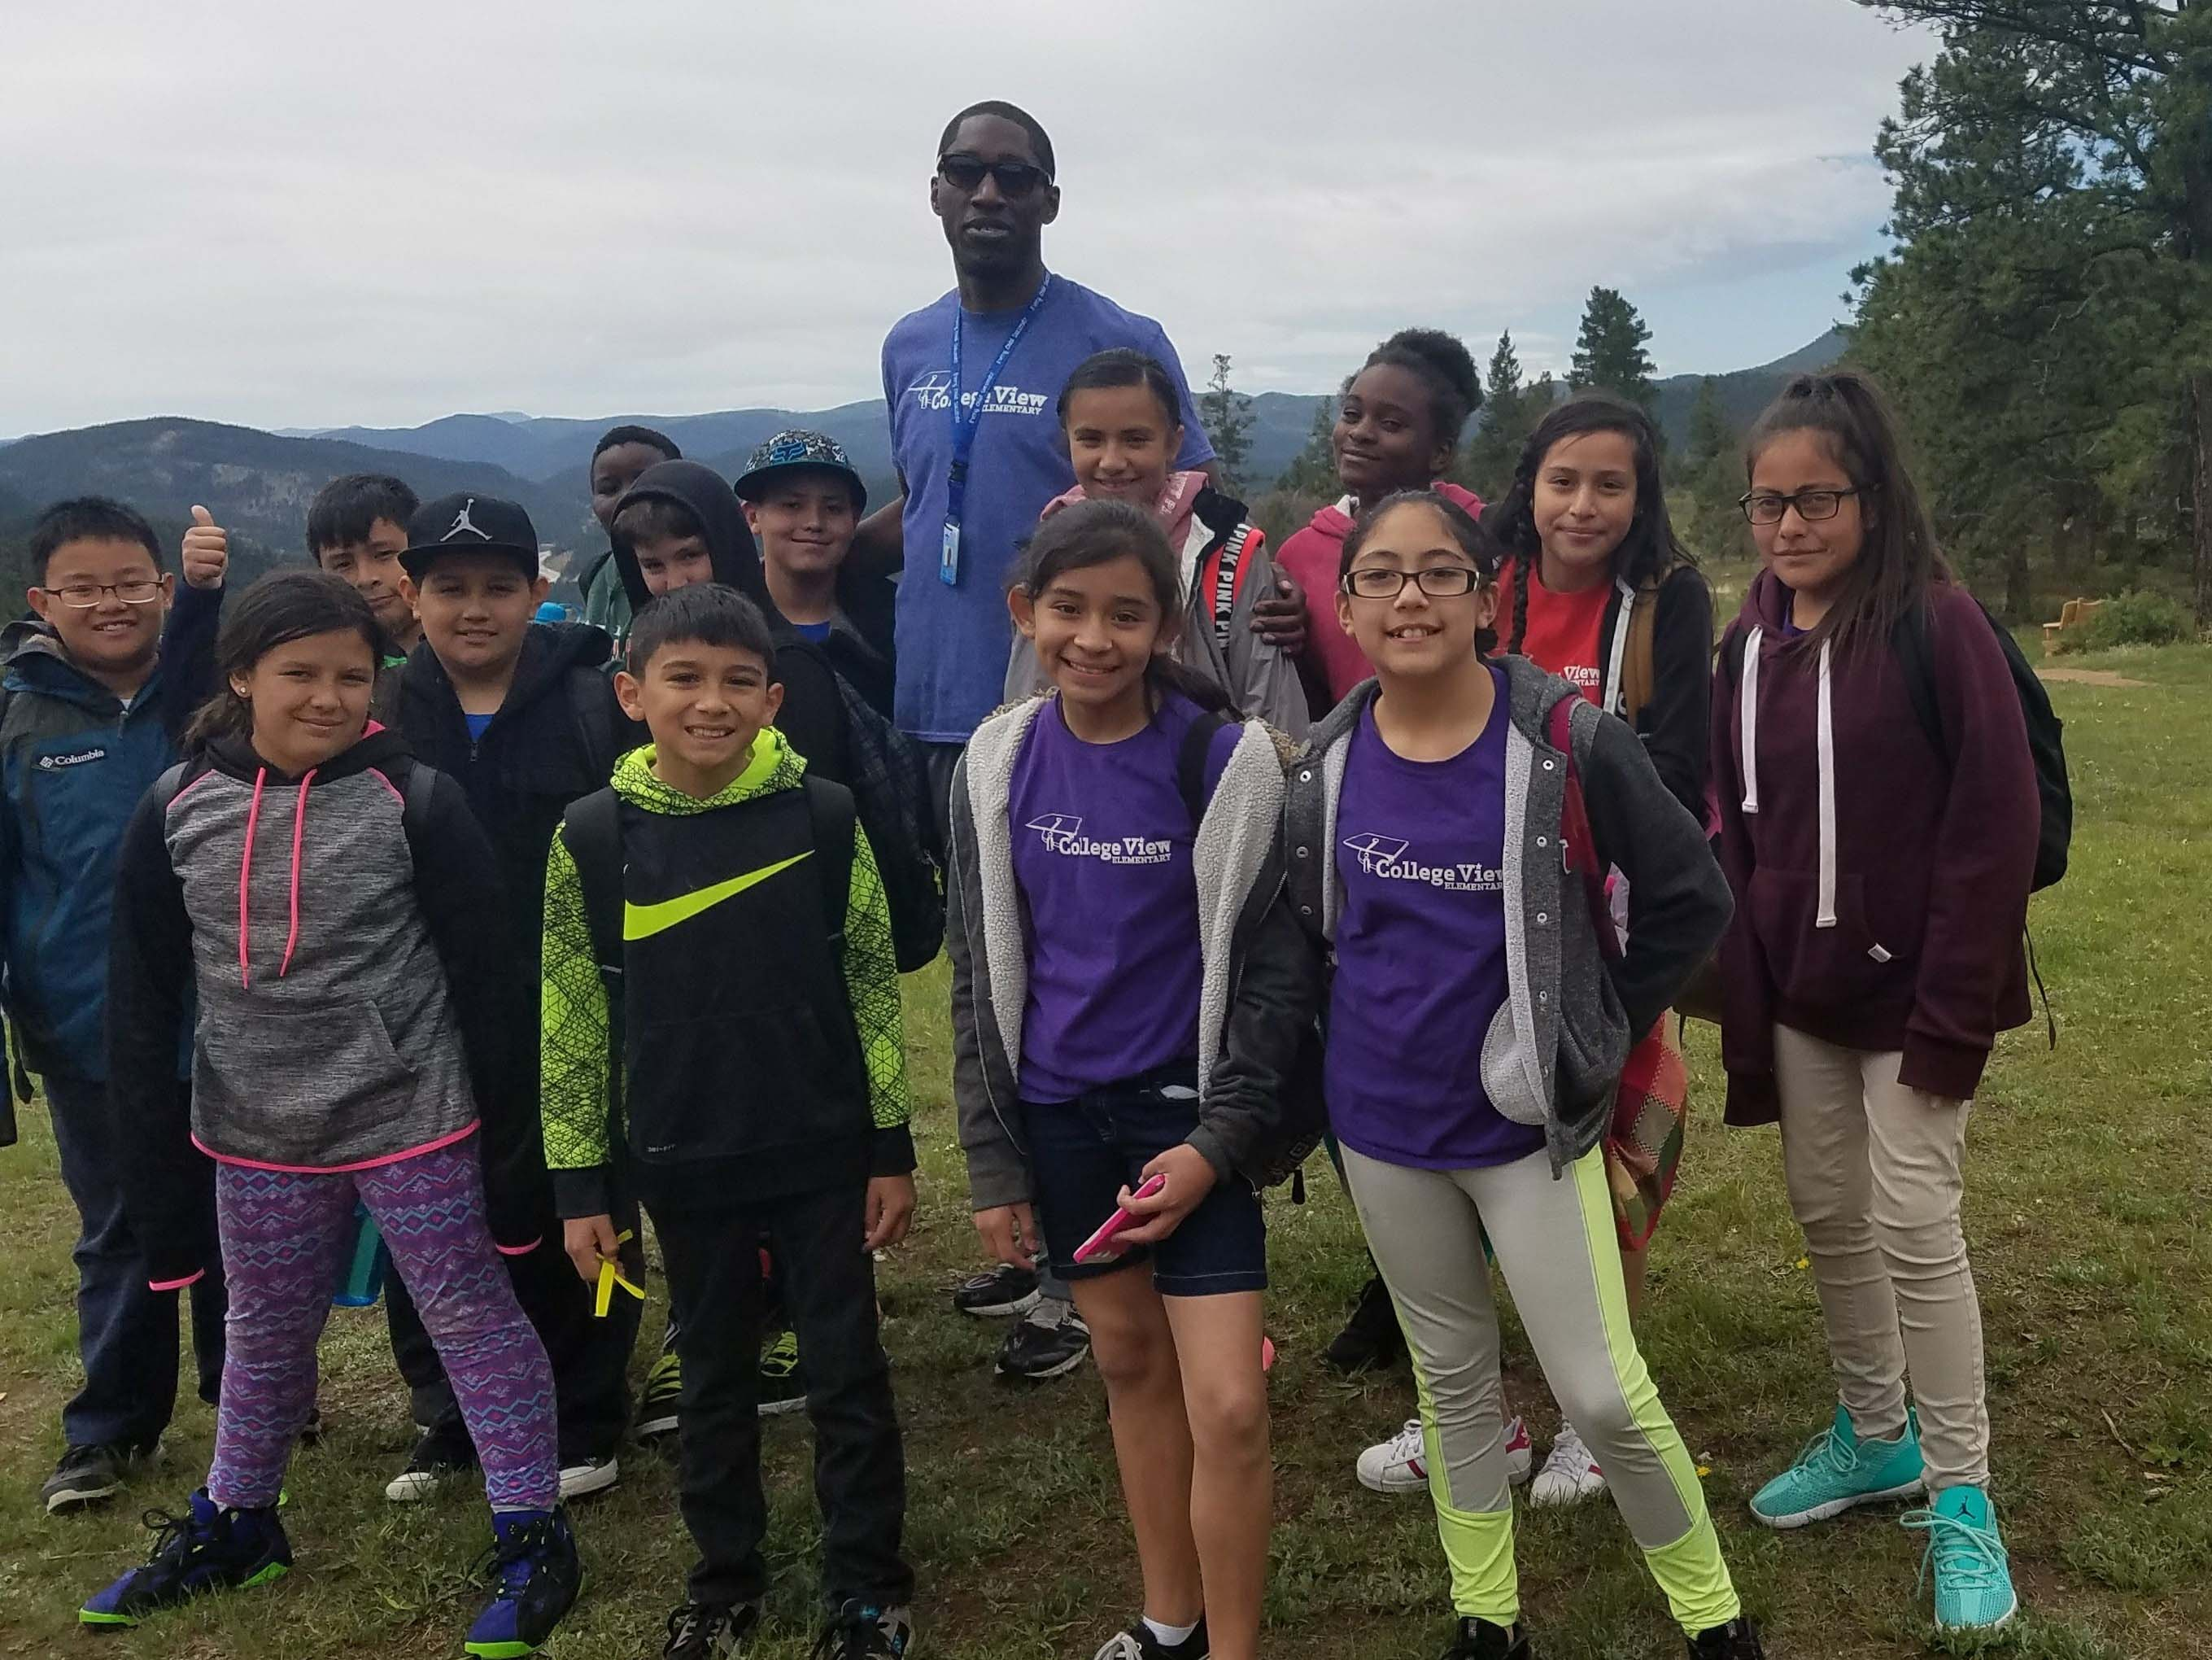 Group of middle school children on top of the mountain with a teacher